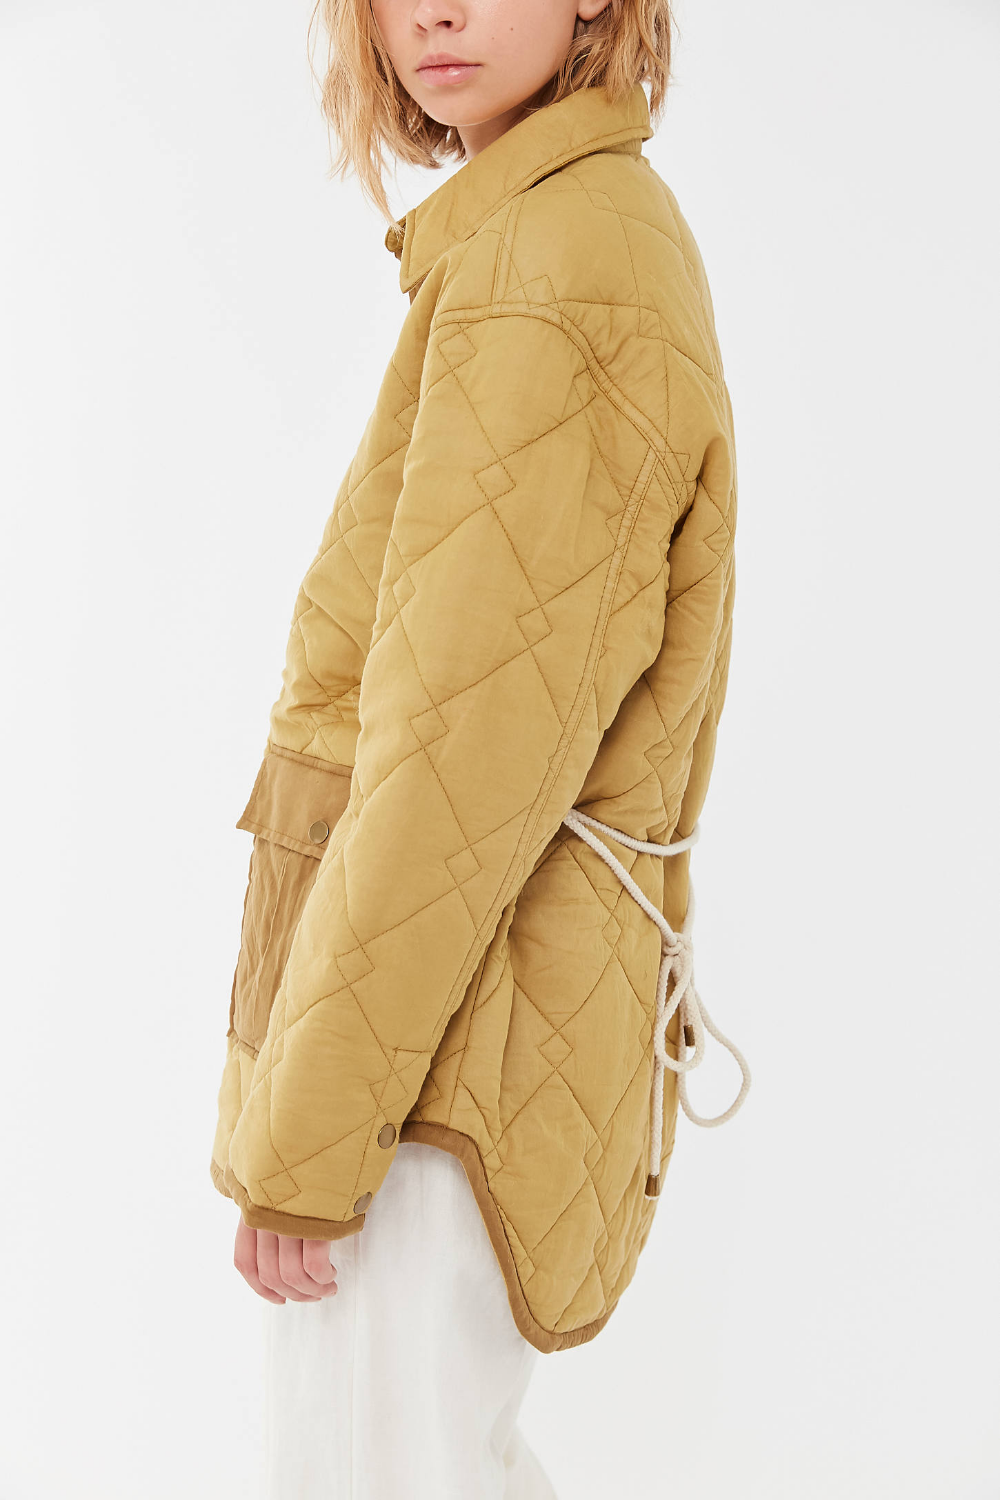 Uo Lita Quilted Shirt Jacket Urban Outfitters Quilted Jacket Street Style Quilt Shirt Outerwear Fashion [ 1500 x 1000 Pixel ]